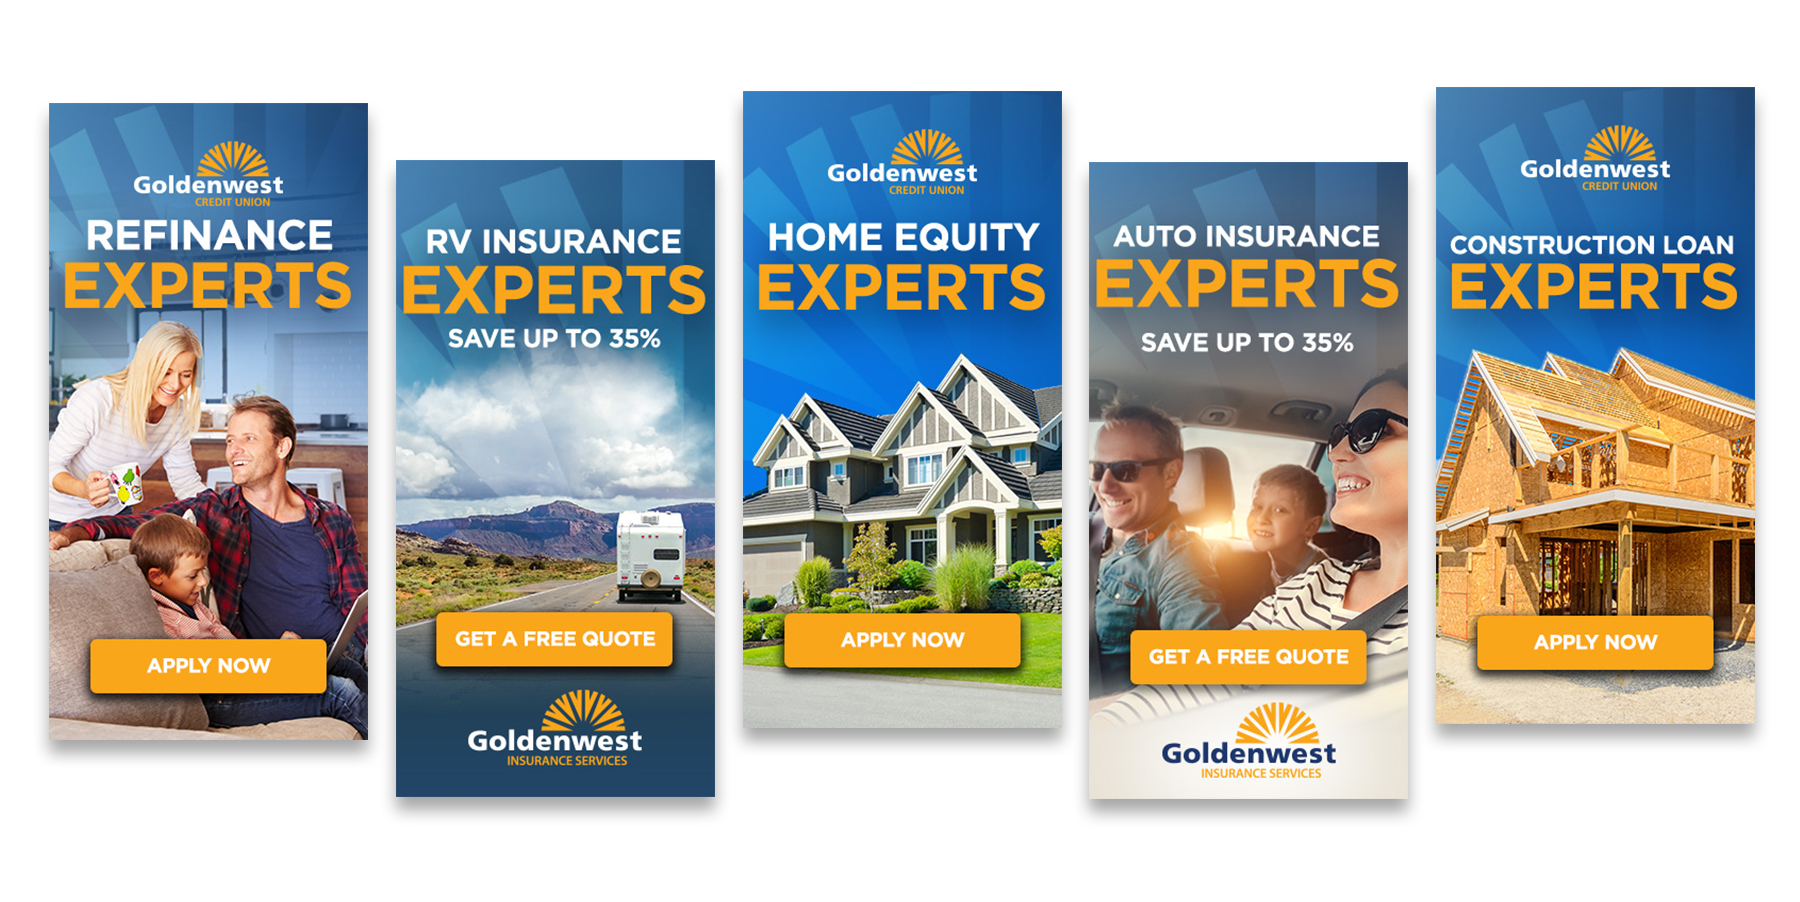 Goldenwest Credit Union Experts Banners